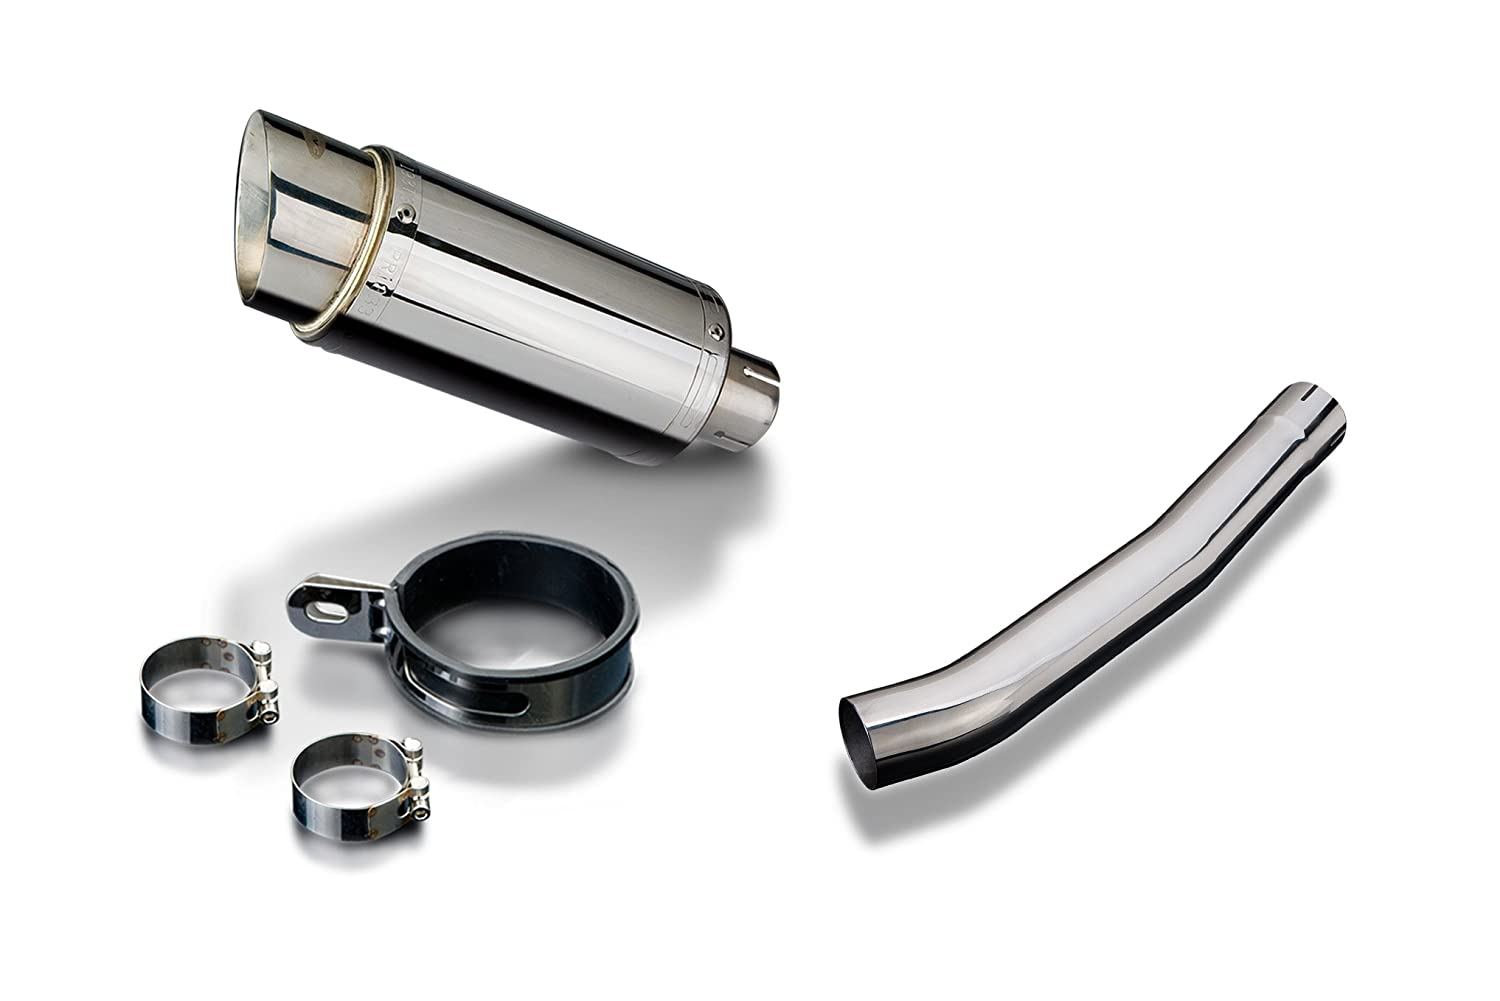 YZFR6 1998-2002 200mm STAINLESS RACE SILENCER KIT EXHAUST Delkevic